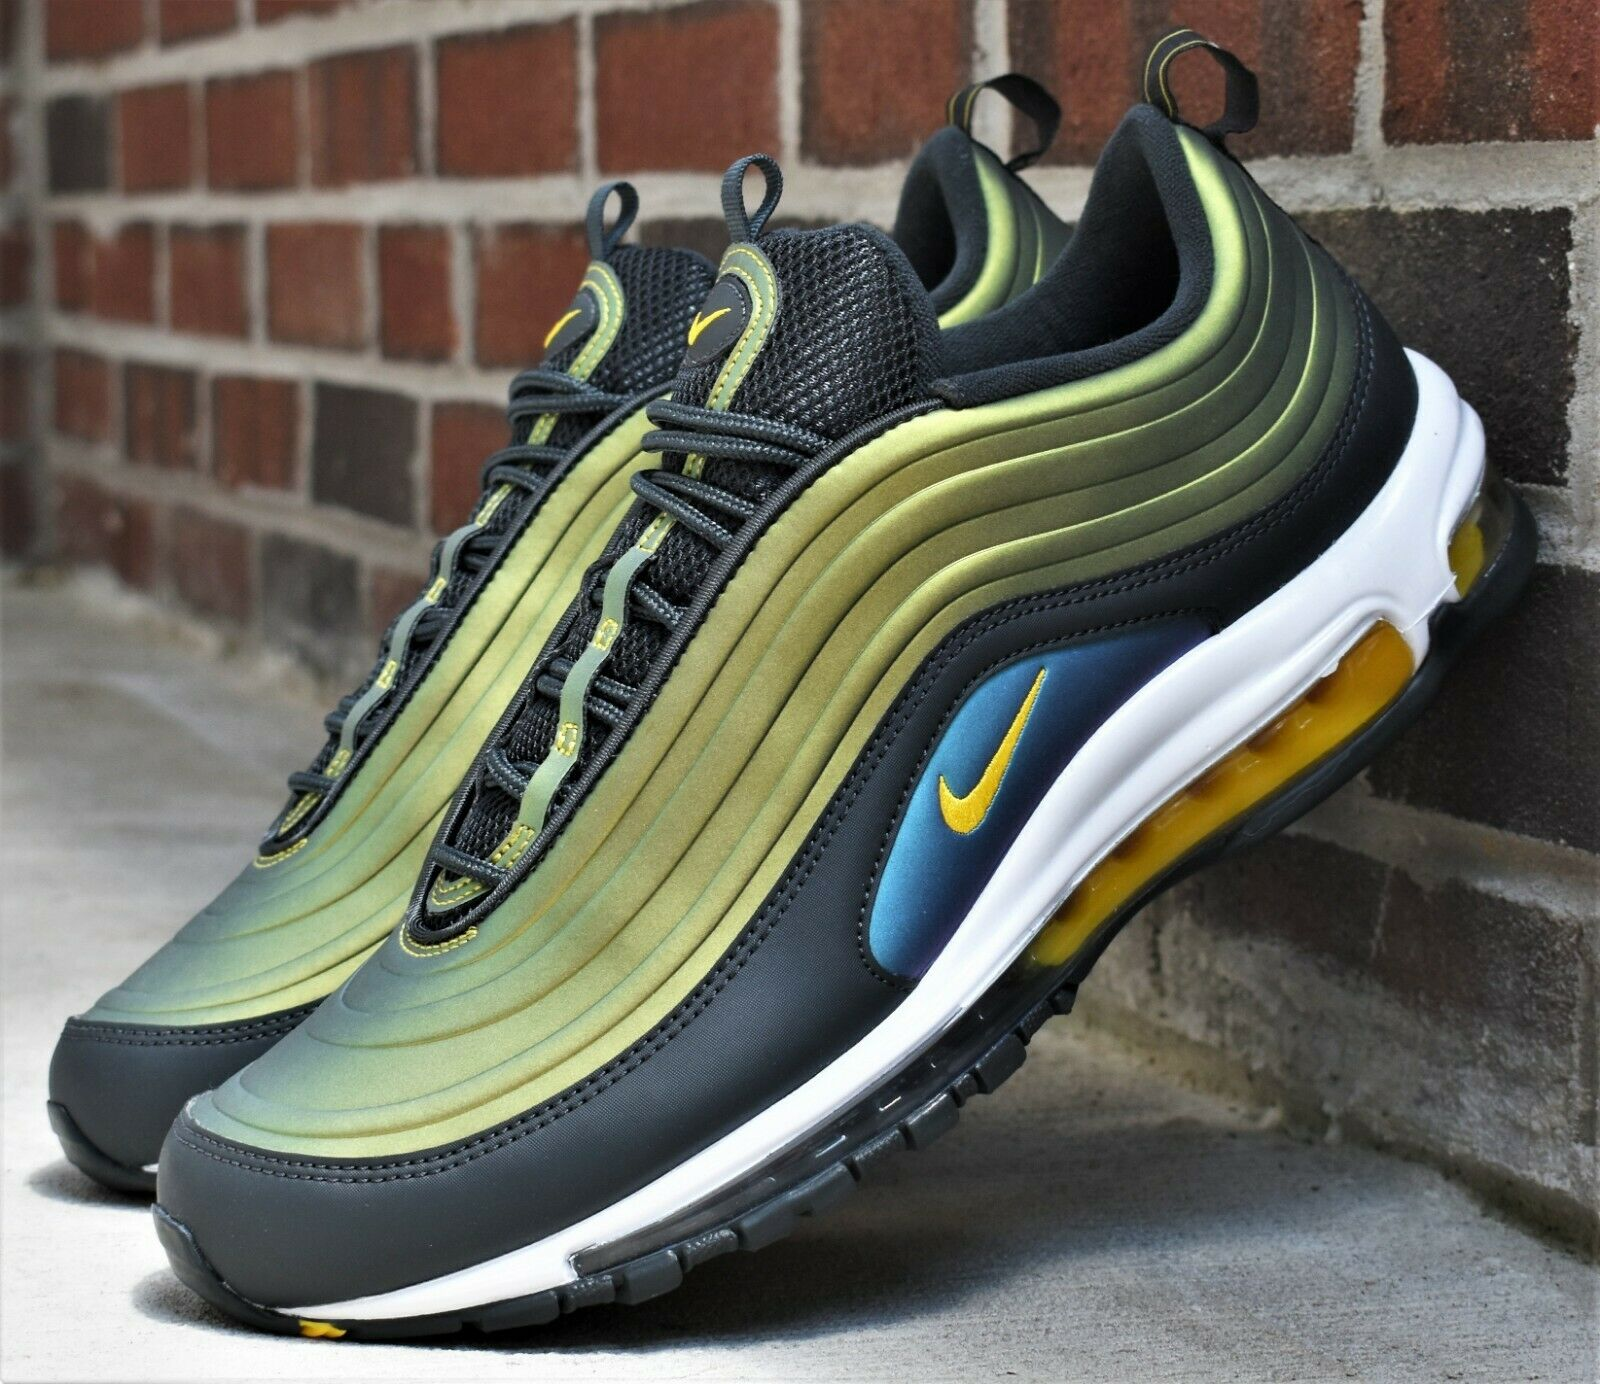 Nike AIR MAX 97 LX New Mens Lifestyle Airmax Sneakers Anthracite Amarillo